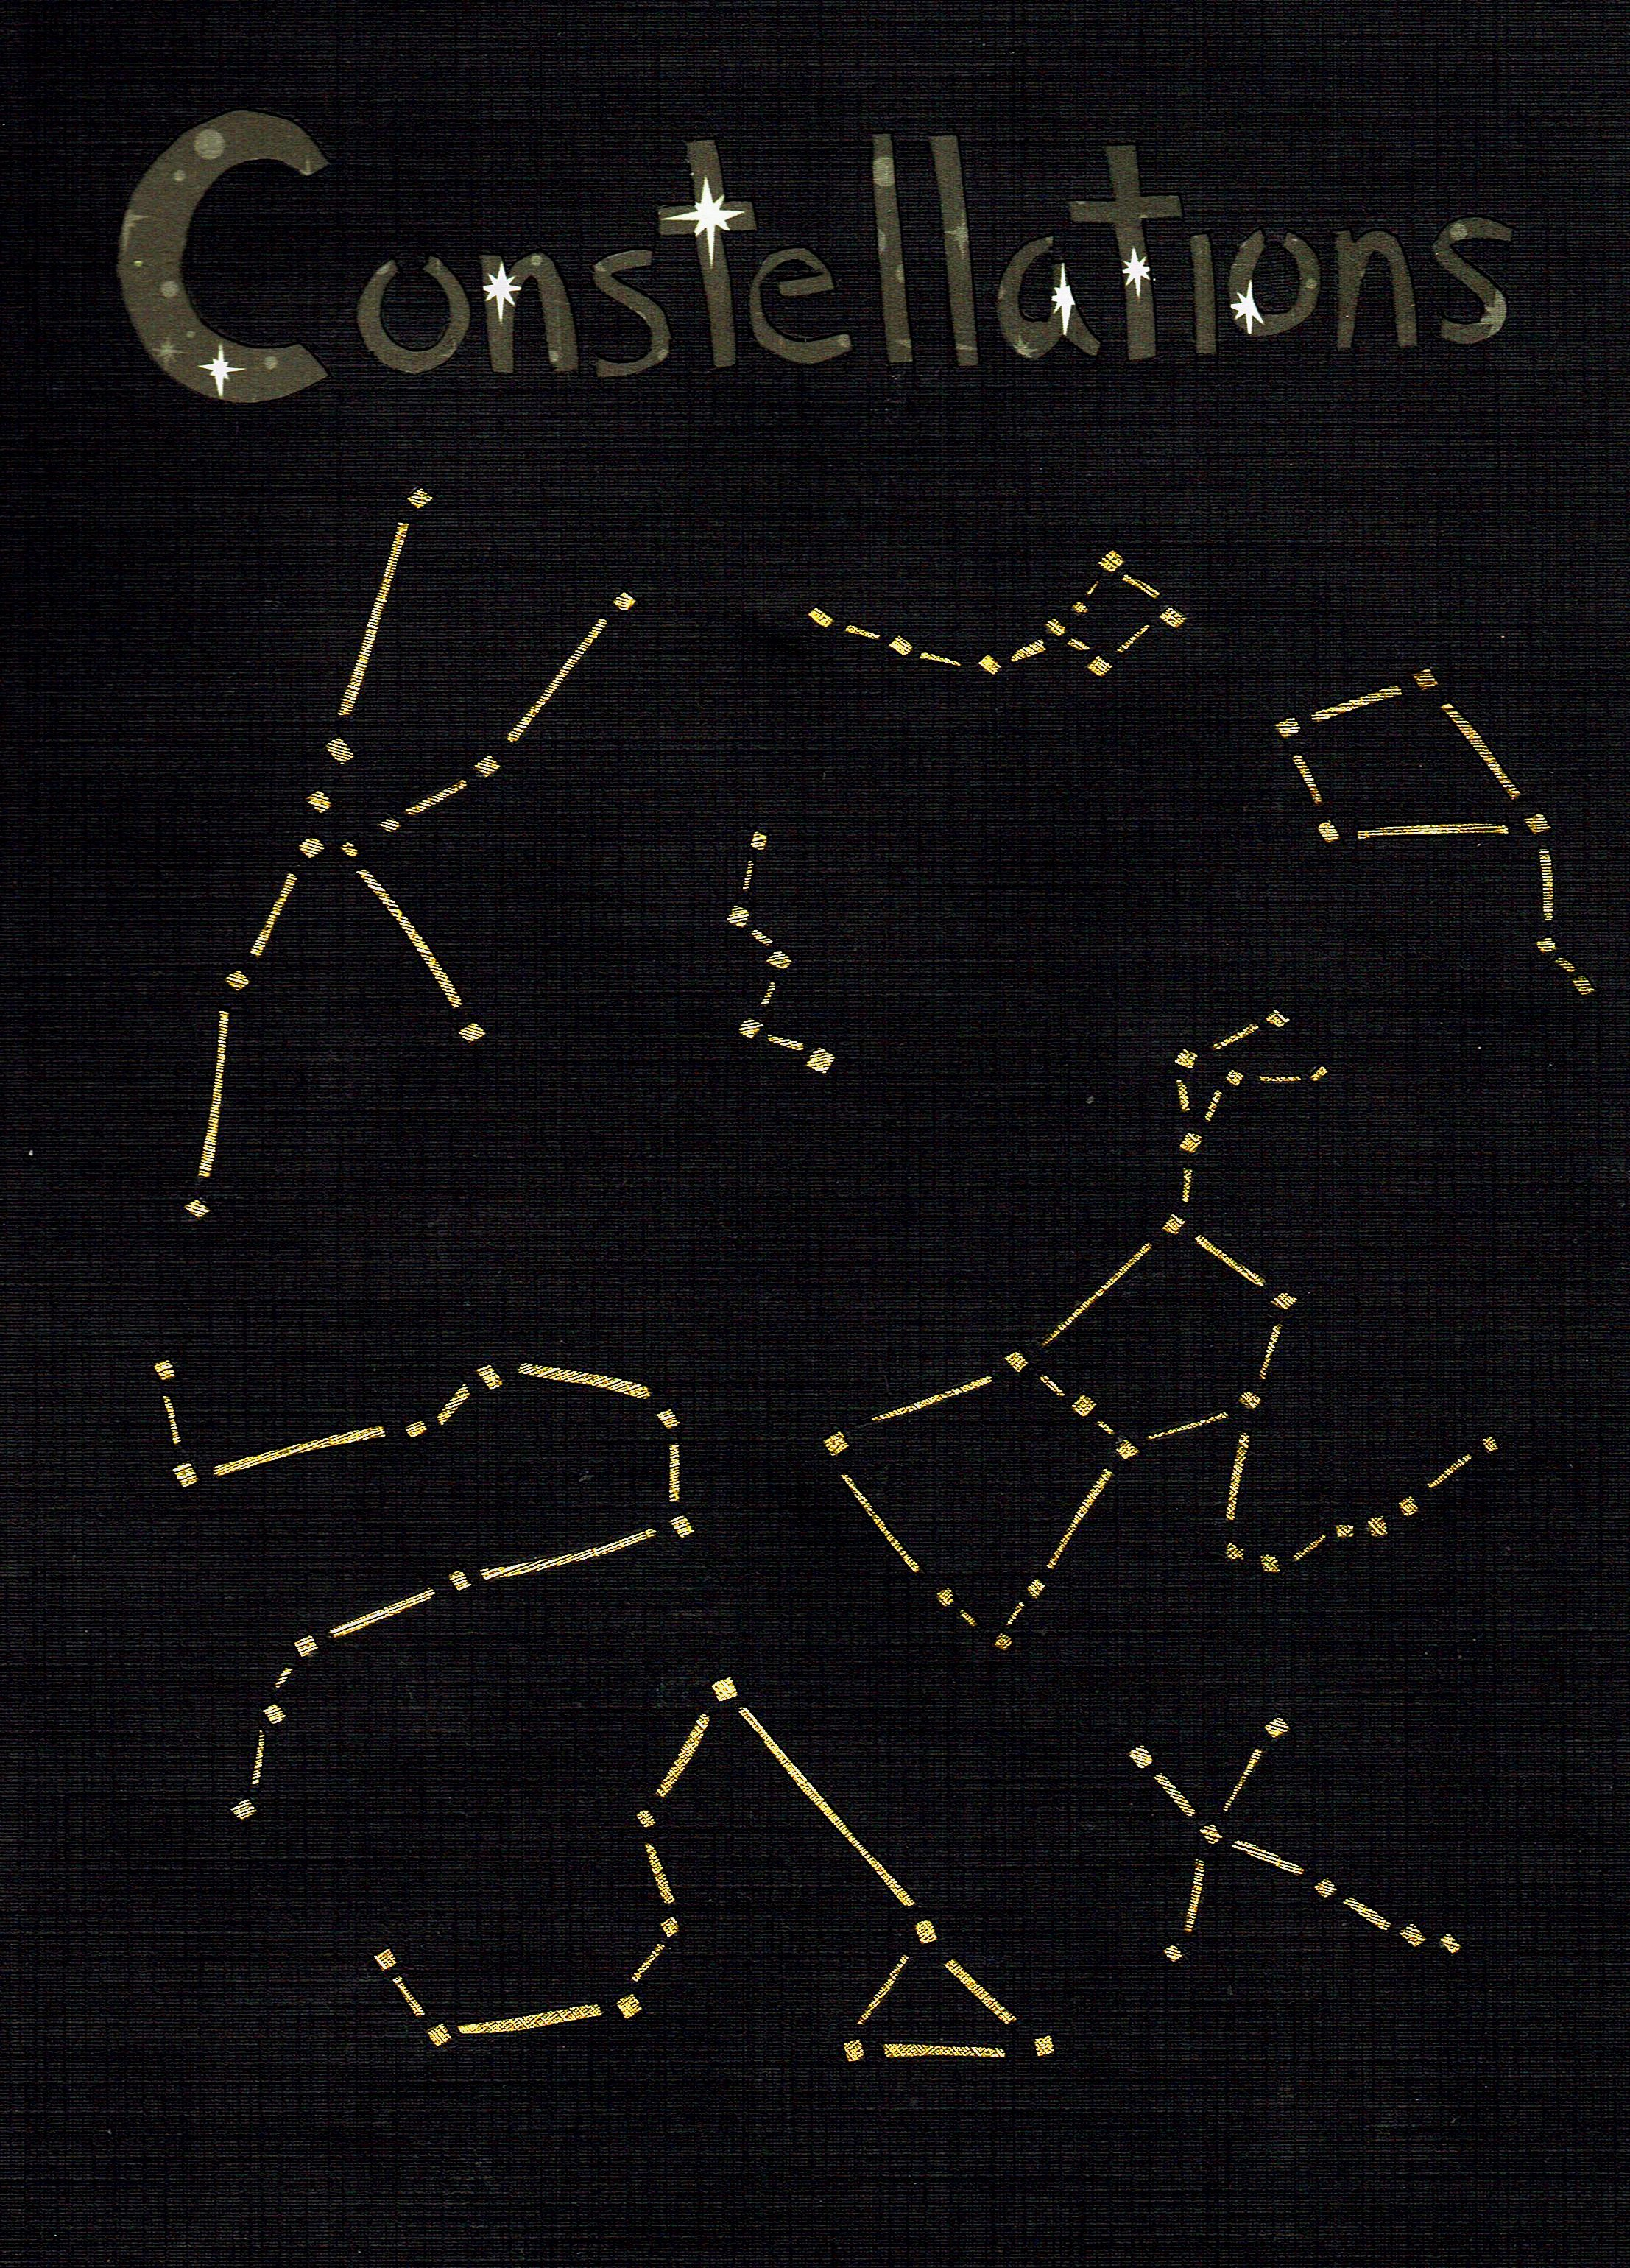 Day 12 - Constellations